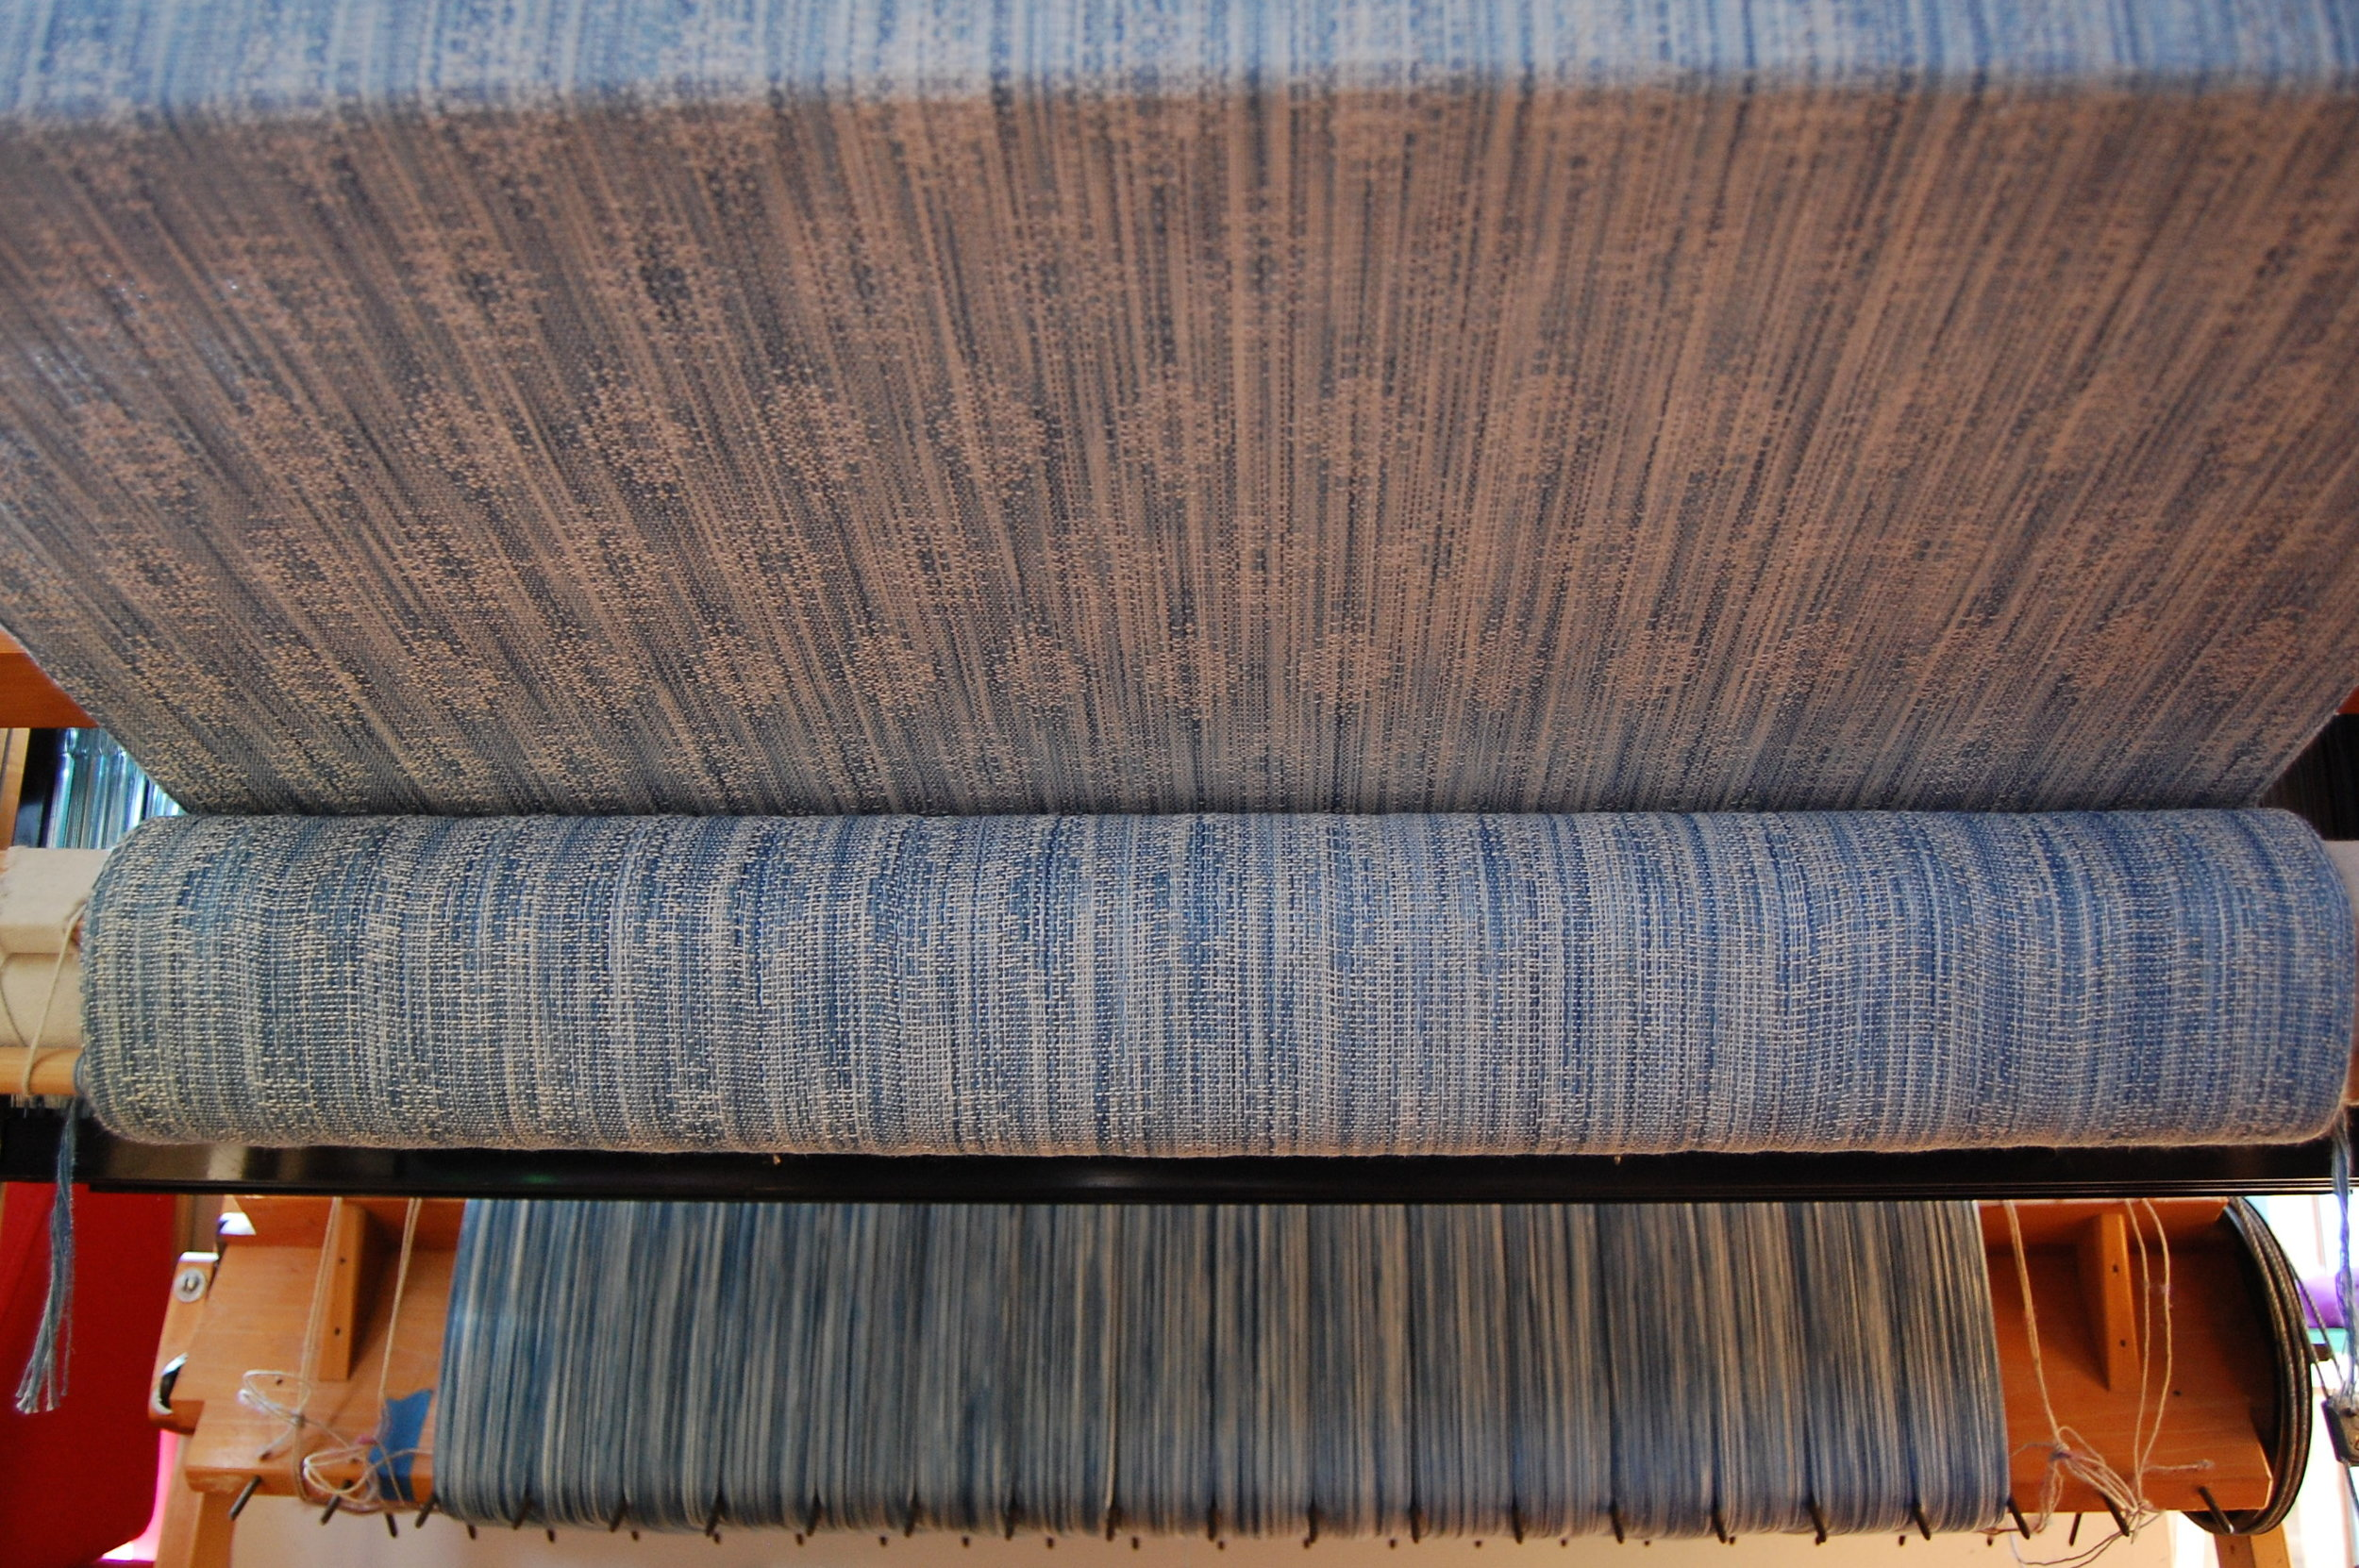 Indigo v.2 Blueprint with natural silk/seacell weft 4.7 meters - shown here during weaving